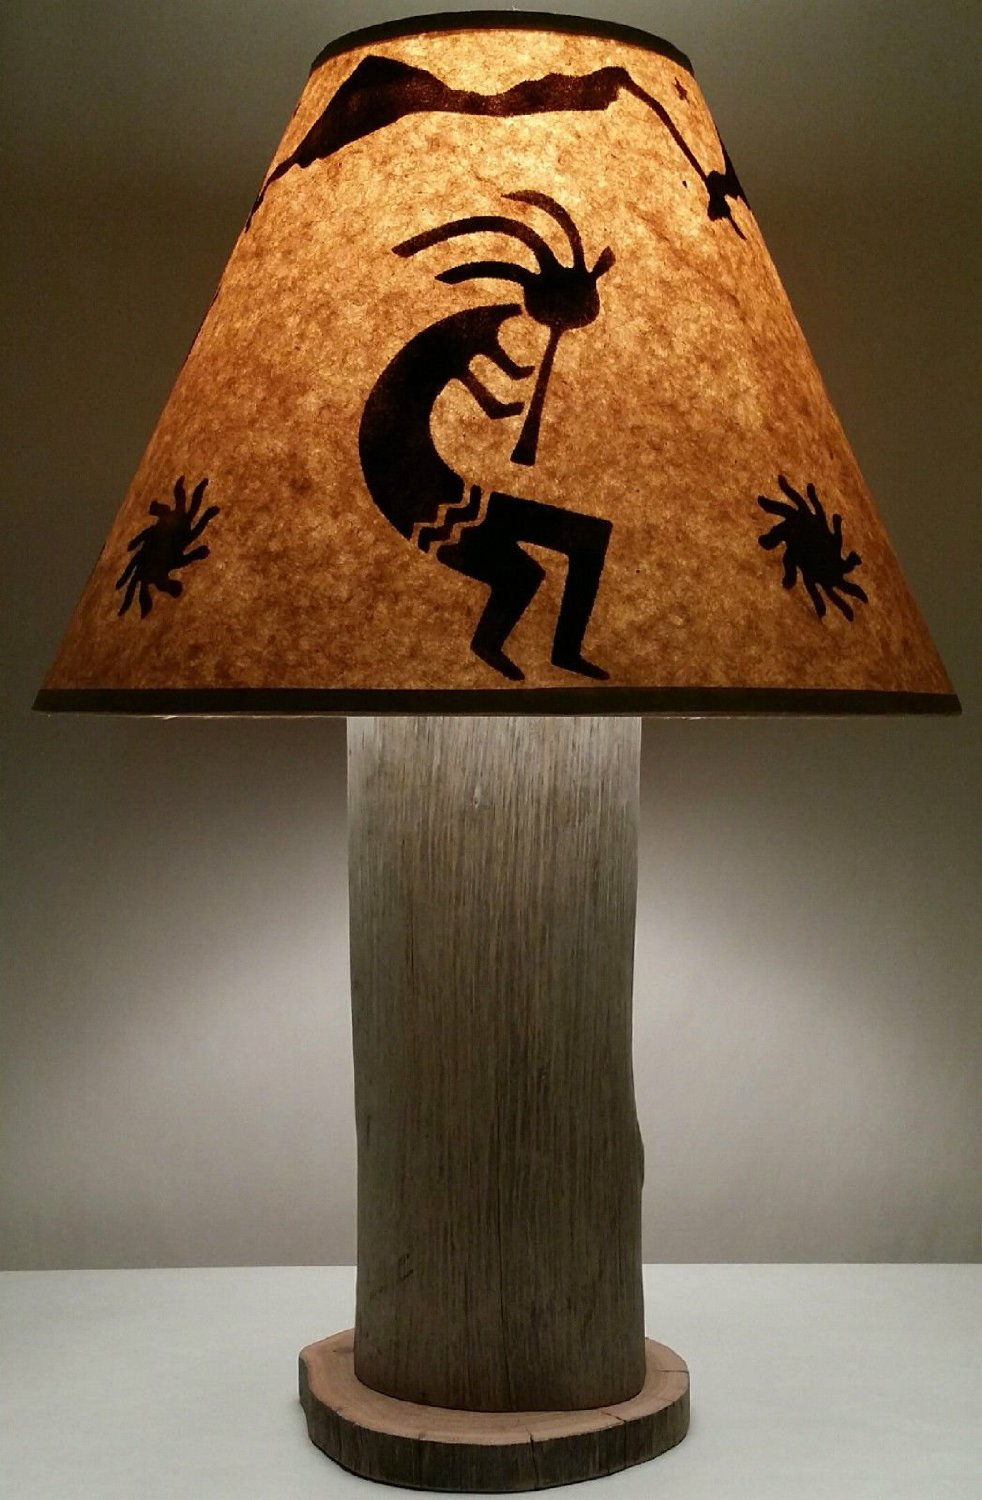 Southwestern native american lamps lighting from earth sky adding warmth is easy with lamp shades that glow bring natures gifts into your space aloadofball Gallery